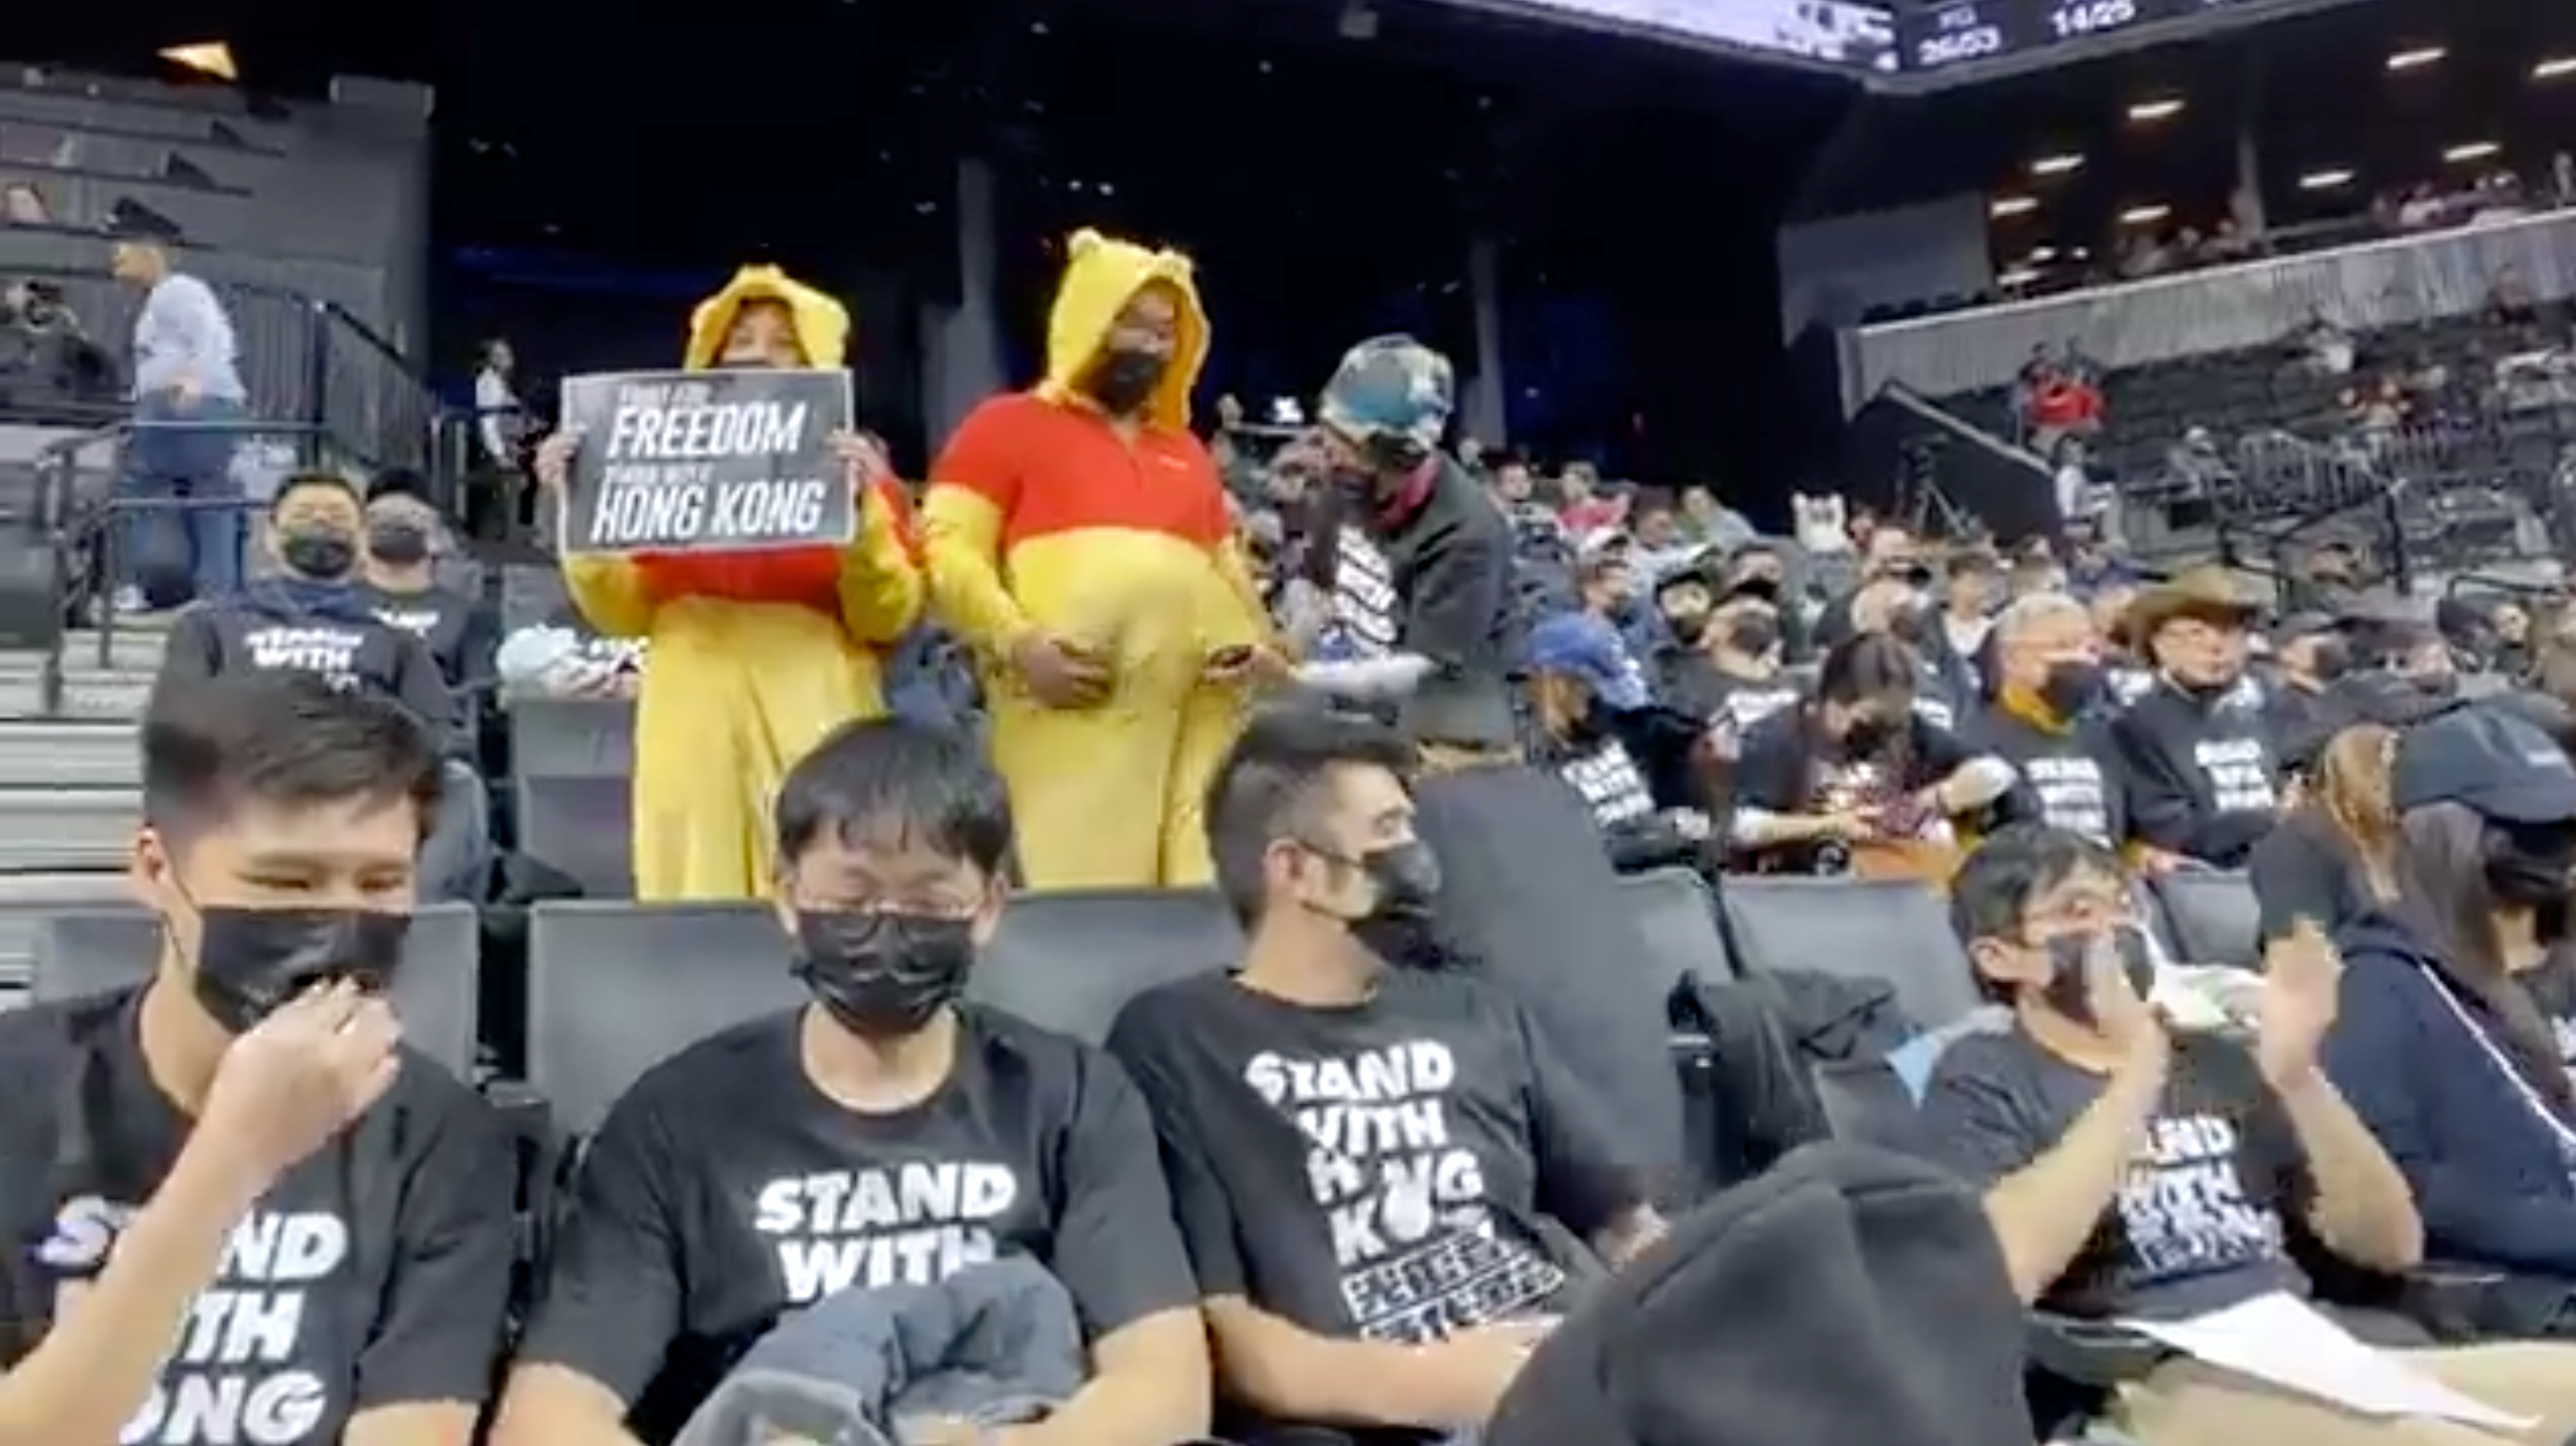 Pro-democracy protesters supporting Hong Kong are seen on the stands of Barclays Center during a game between the Brooklyn Nets and Toronto Raptors, in New York City, New York, U.S., October 18, 2019 in this still image obtained from social media video on Oct. 19, 2019. NY4HK – New Yorkers Supporting Hong Kong /via REUTERS